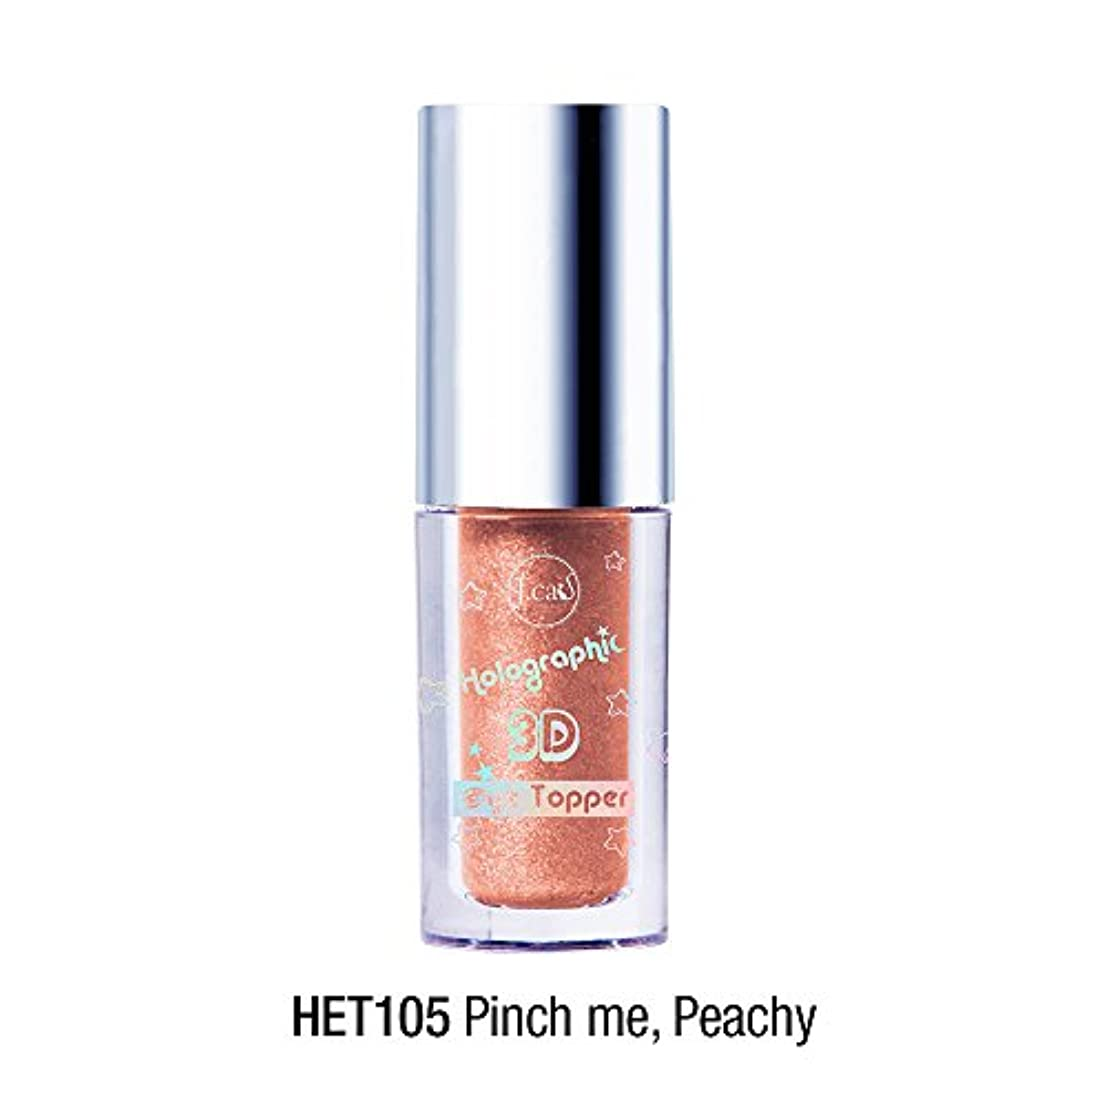 J. CAT BEAUTY Holographic 3d Eye Topper - Wink Tink (並行輸入品)